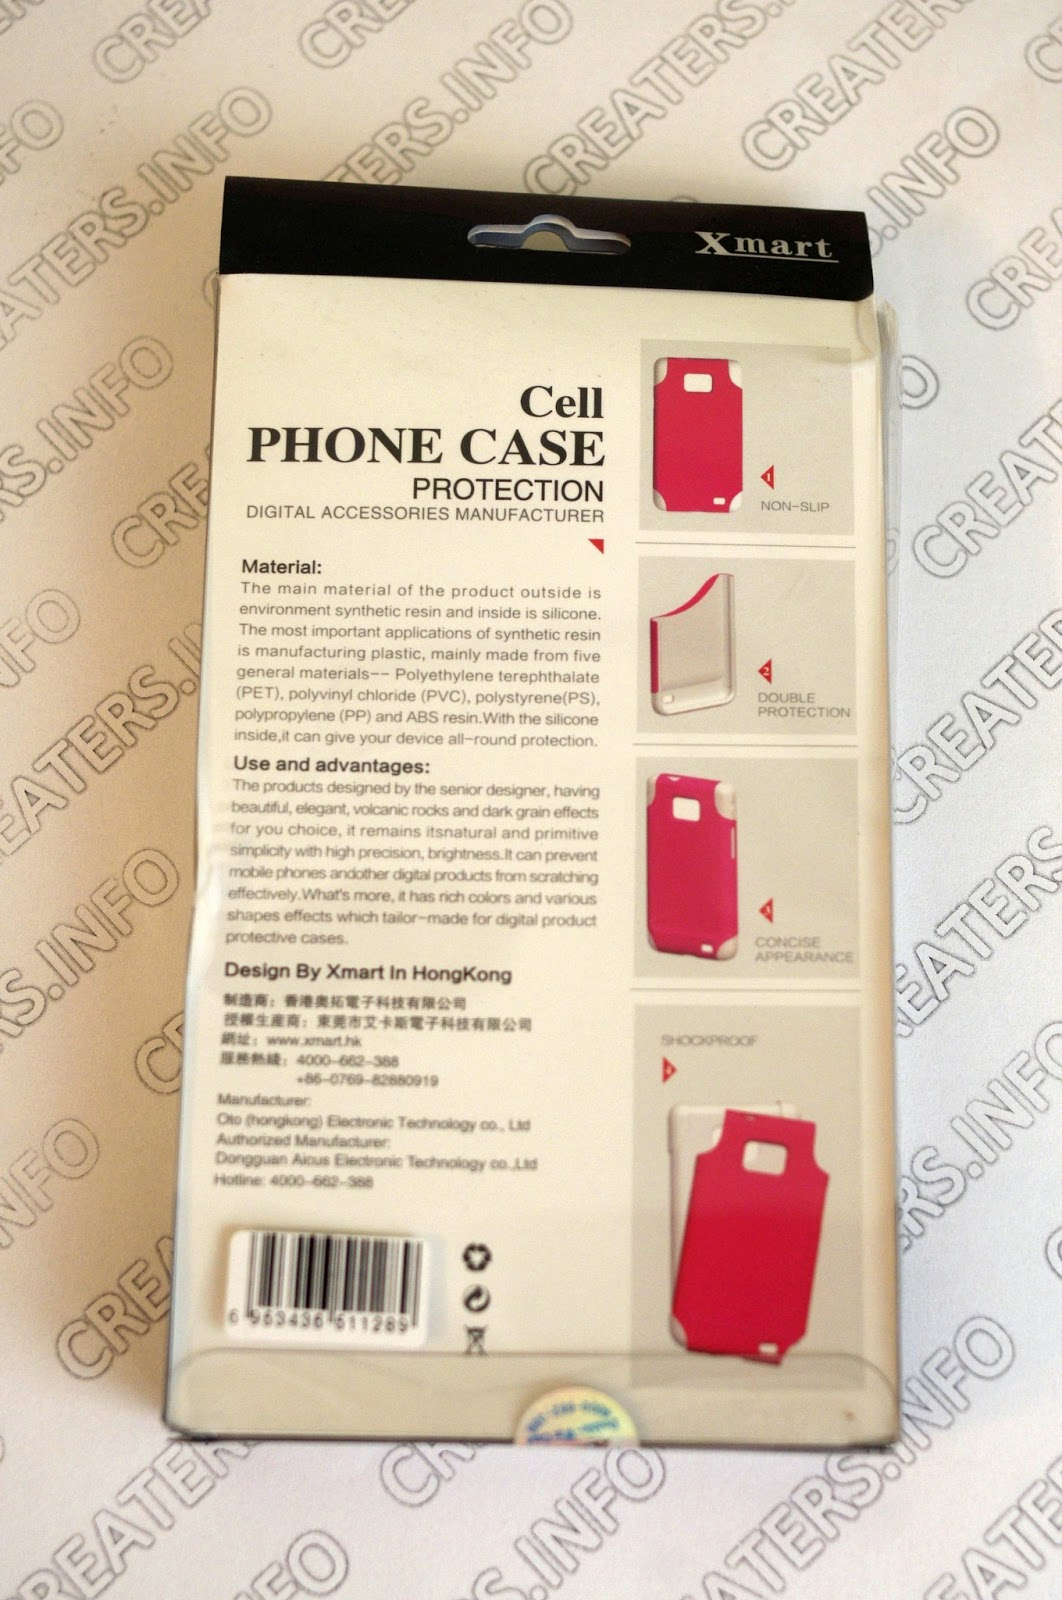 Xmart SF-i9100/9108 double case